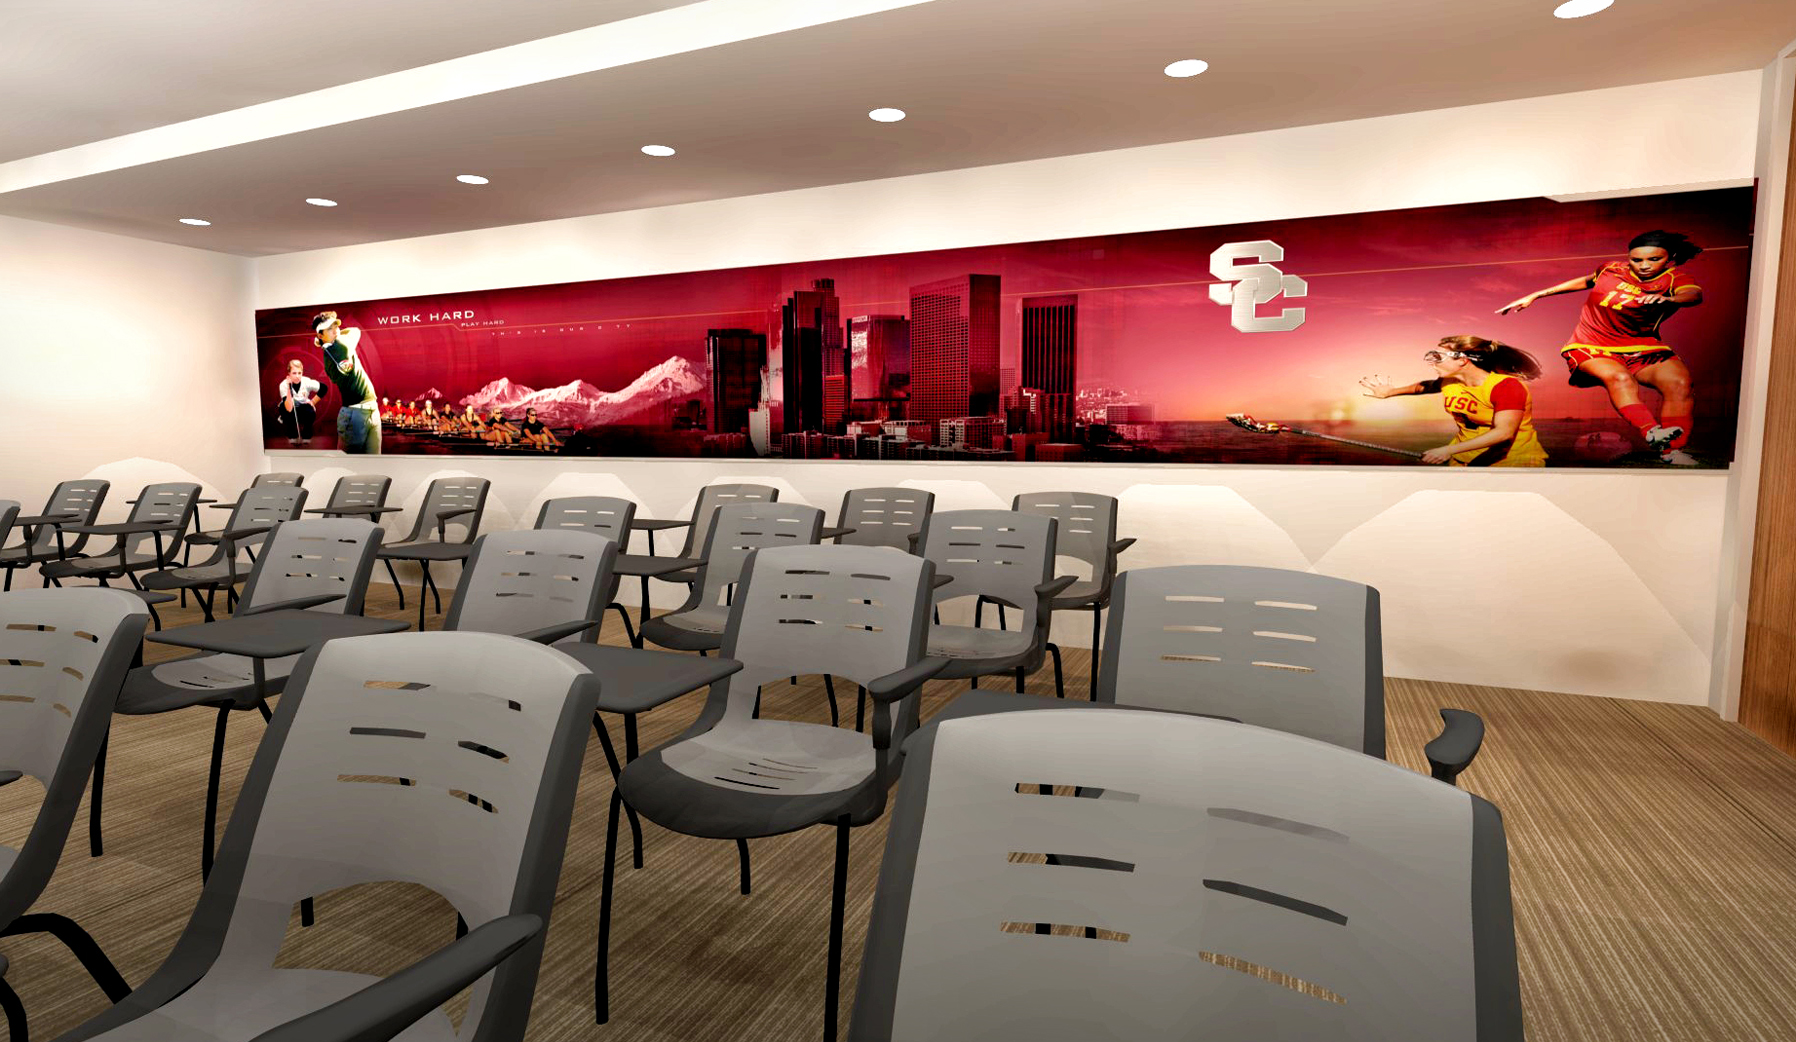 Heritage Hall concept rendering: Murals for academic study lounges